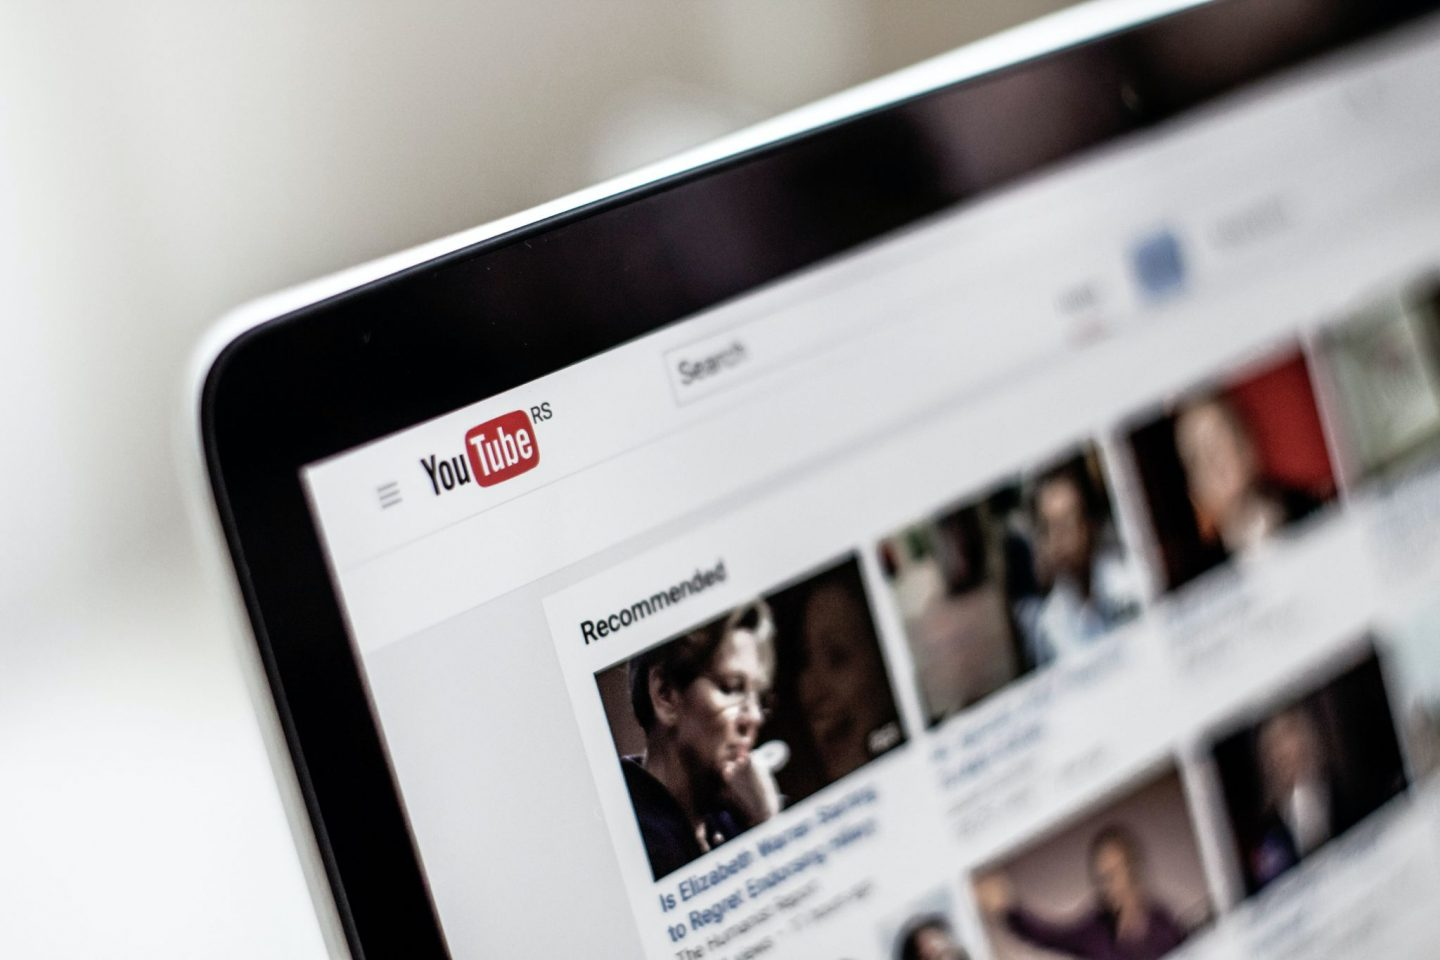 HOW TO PROMOTE YOUR YOUTUBE CHANNEL TO MAXIMISE VIEWS